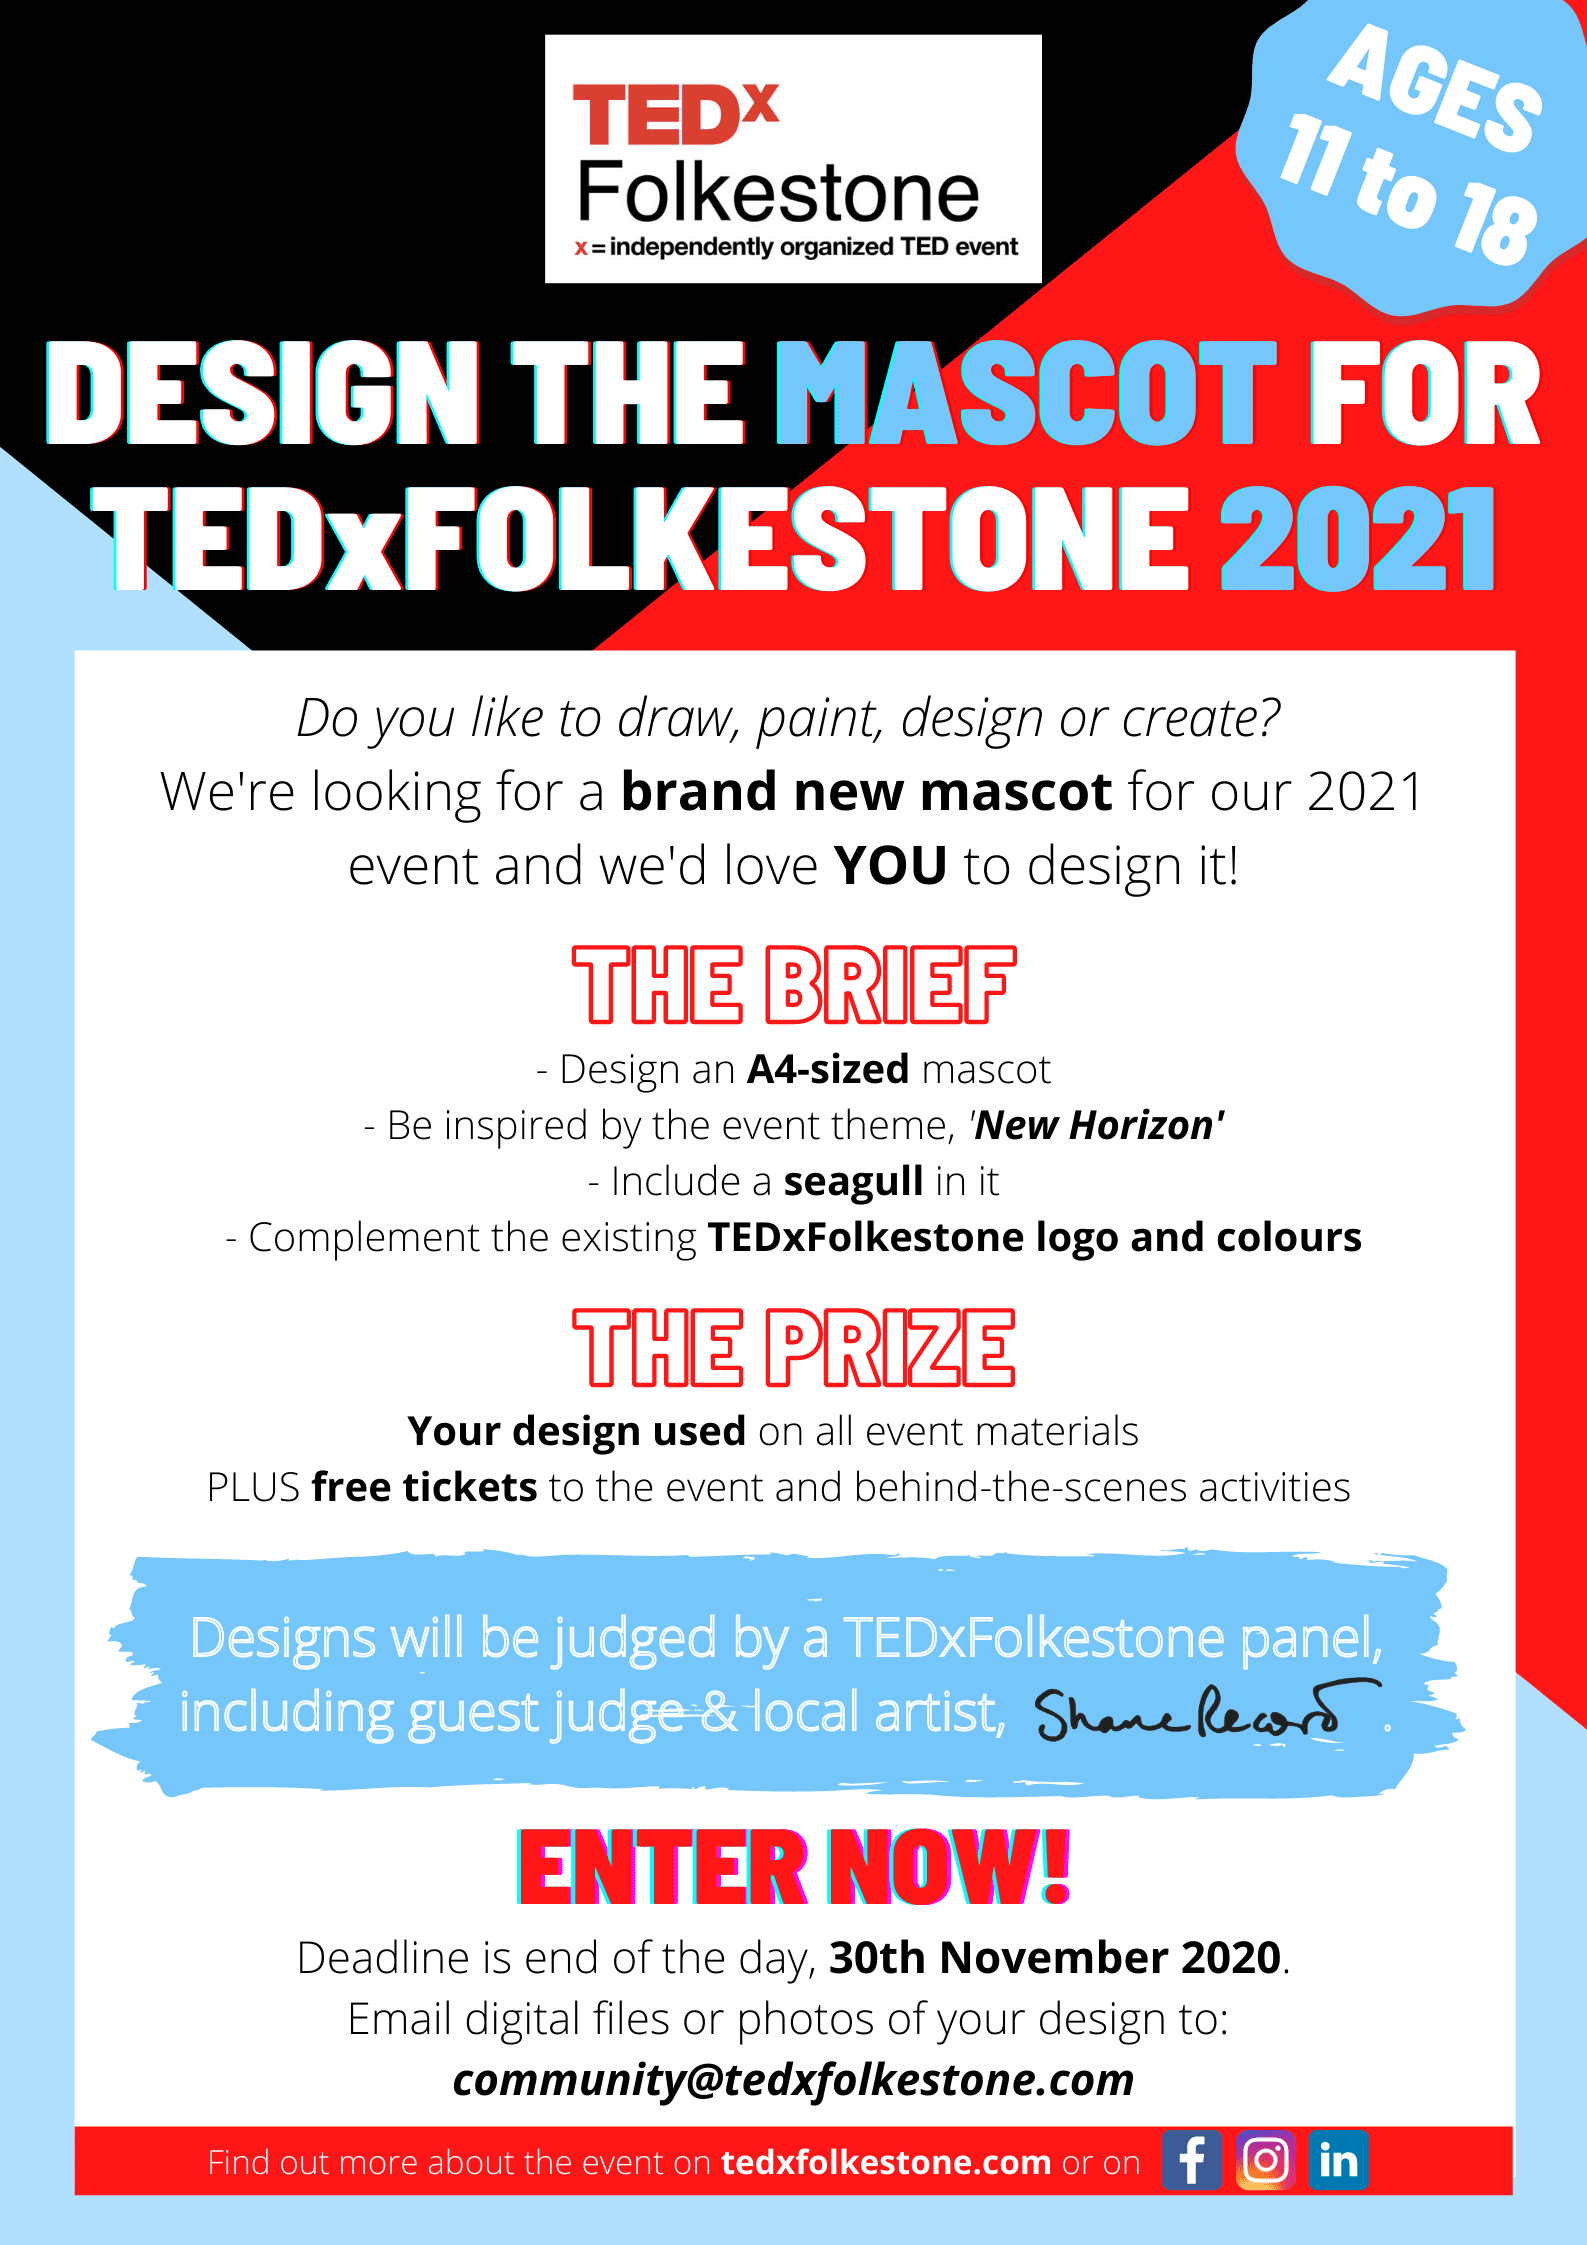 Design Brief for TEDxFolkestone 2021 Mascot Competition